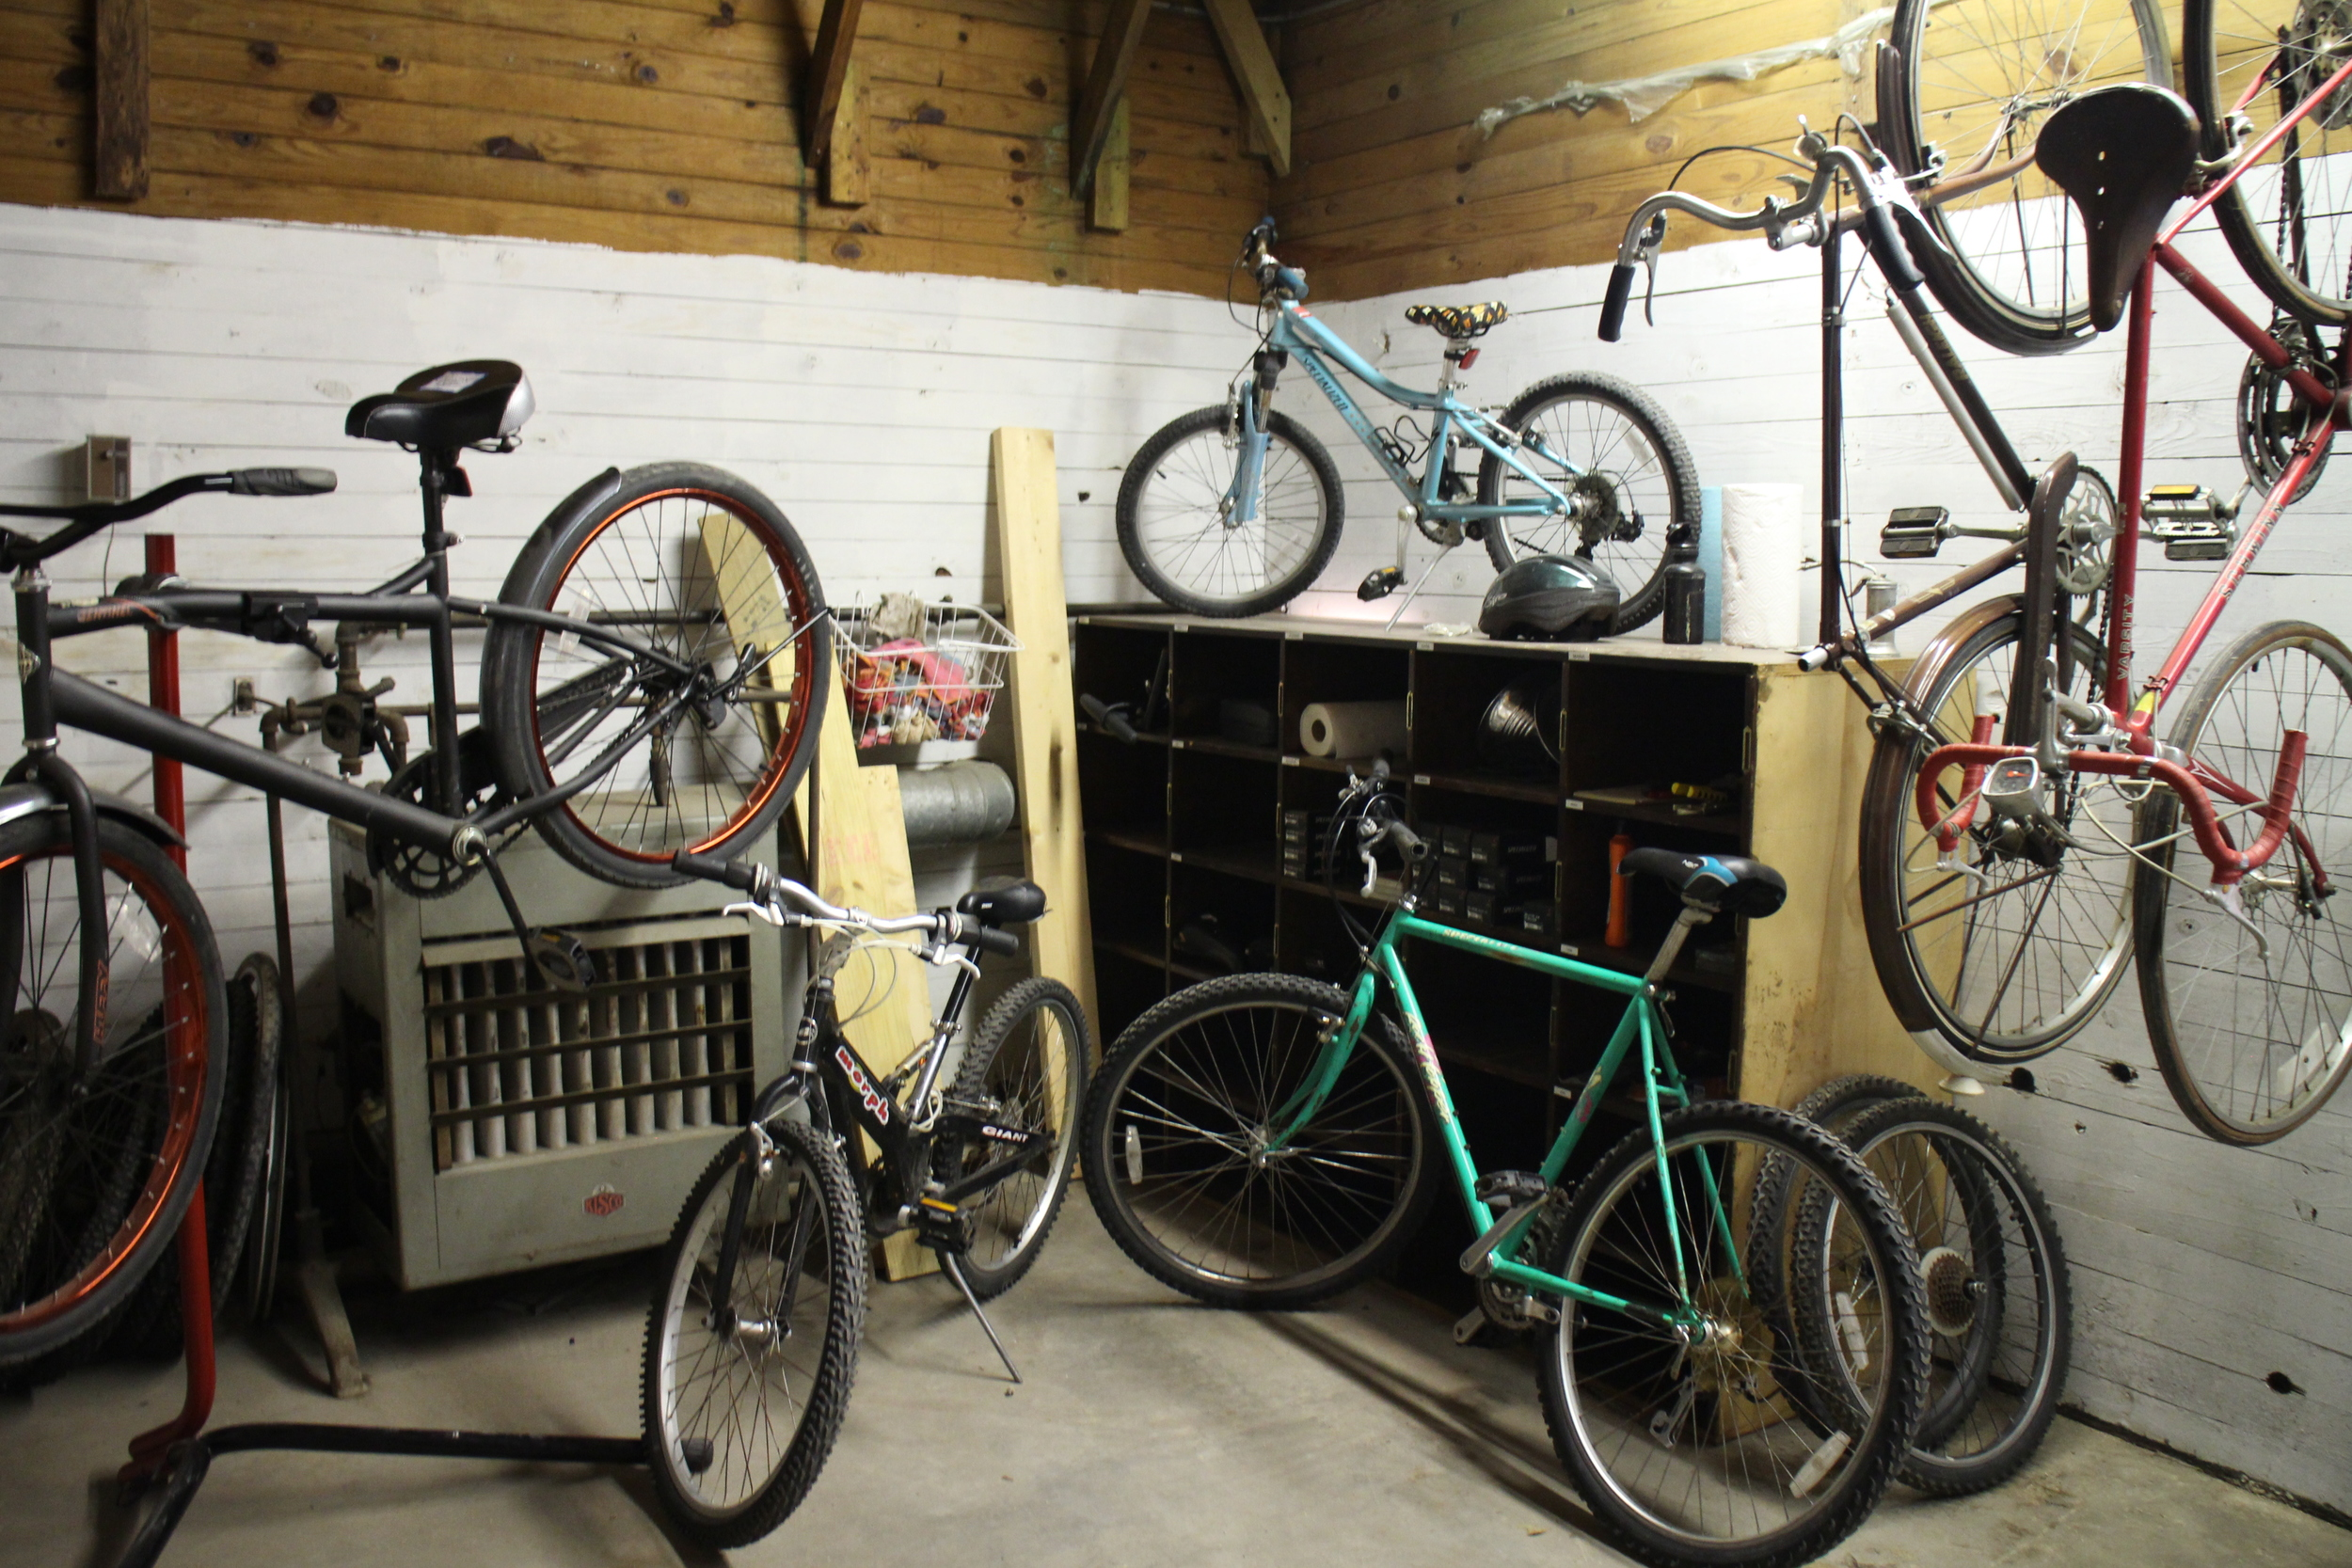 The results from one angle. We've got so much more space to collect and repair bikes now! The best part is we don't have to go outside to do our special rerun victory dance after a completed bike repair.